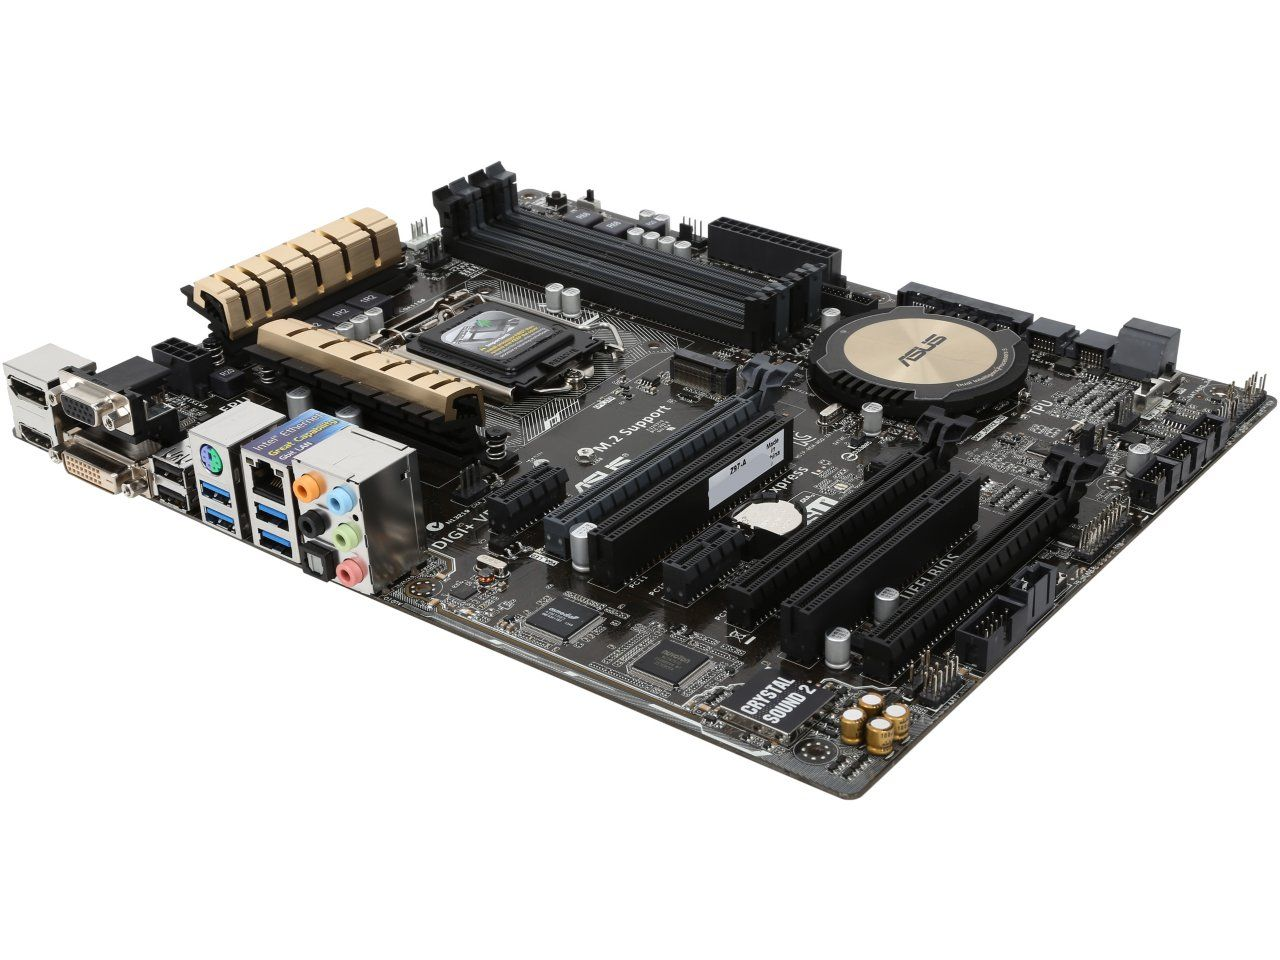 Sata Plus Intel 0 Usb Asus 3 Atx 1150 S Motherboard Intel 6gb Z87 Lga Z87 Hdmi